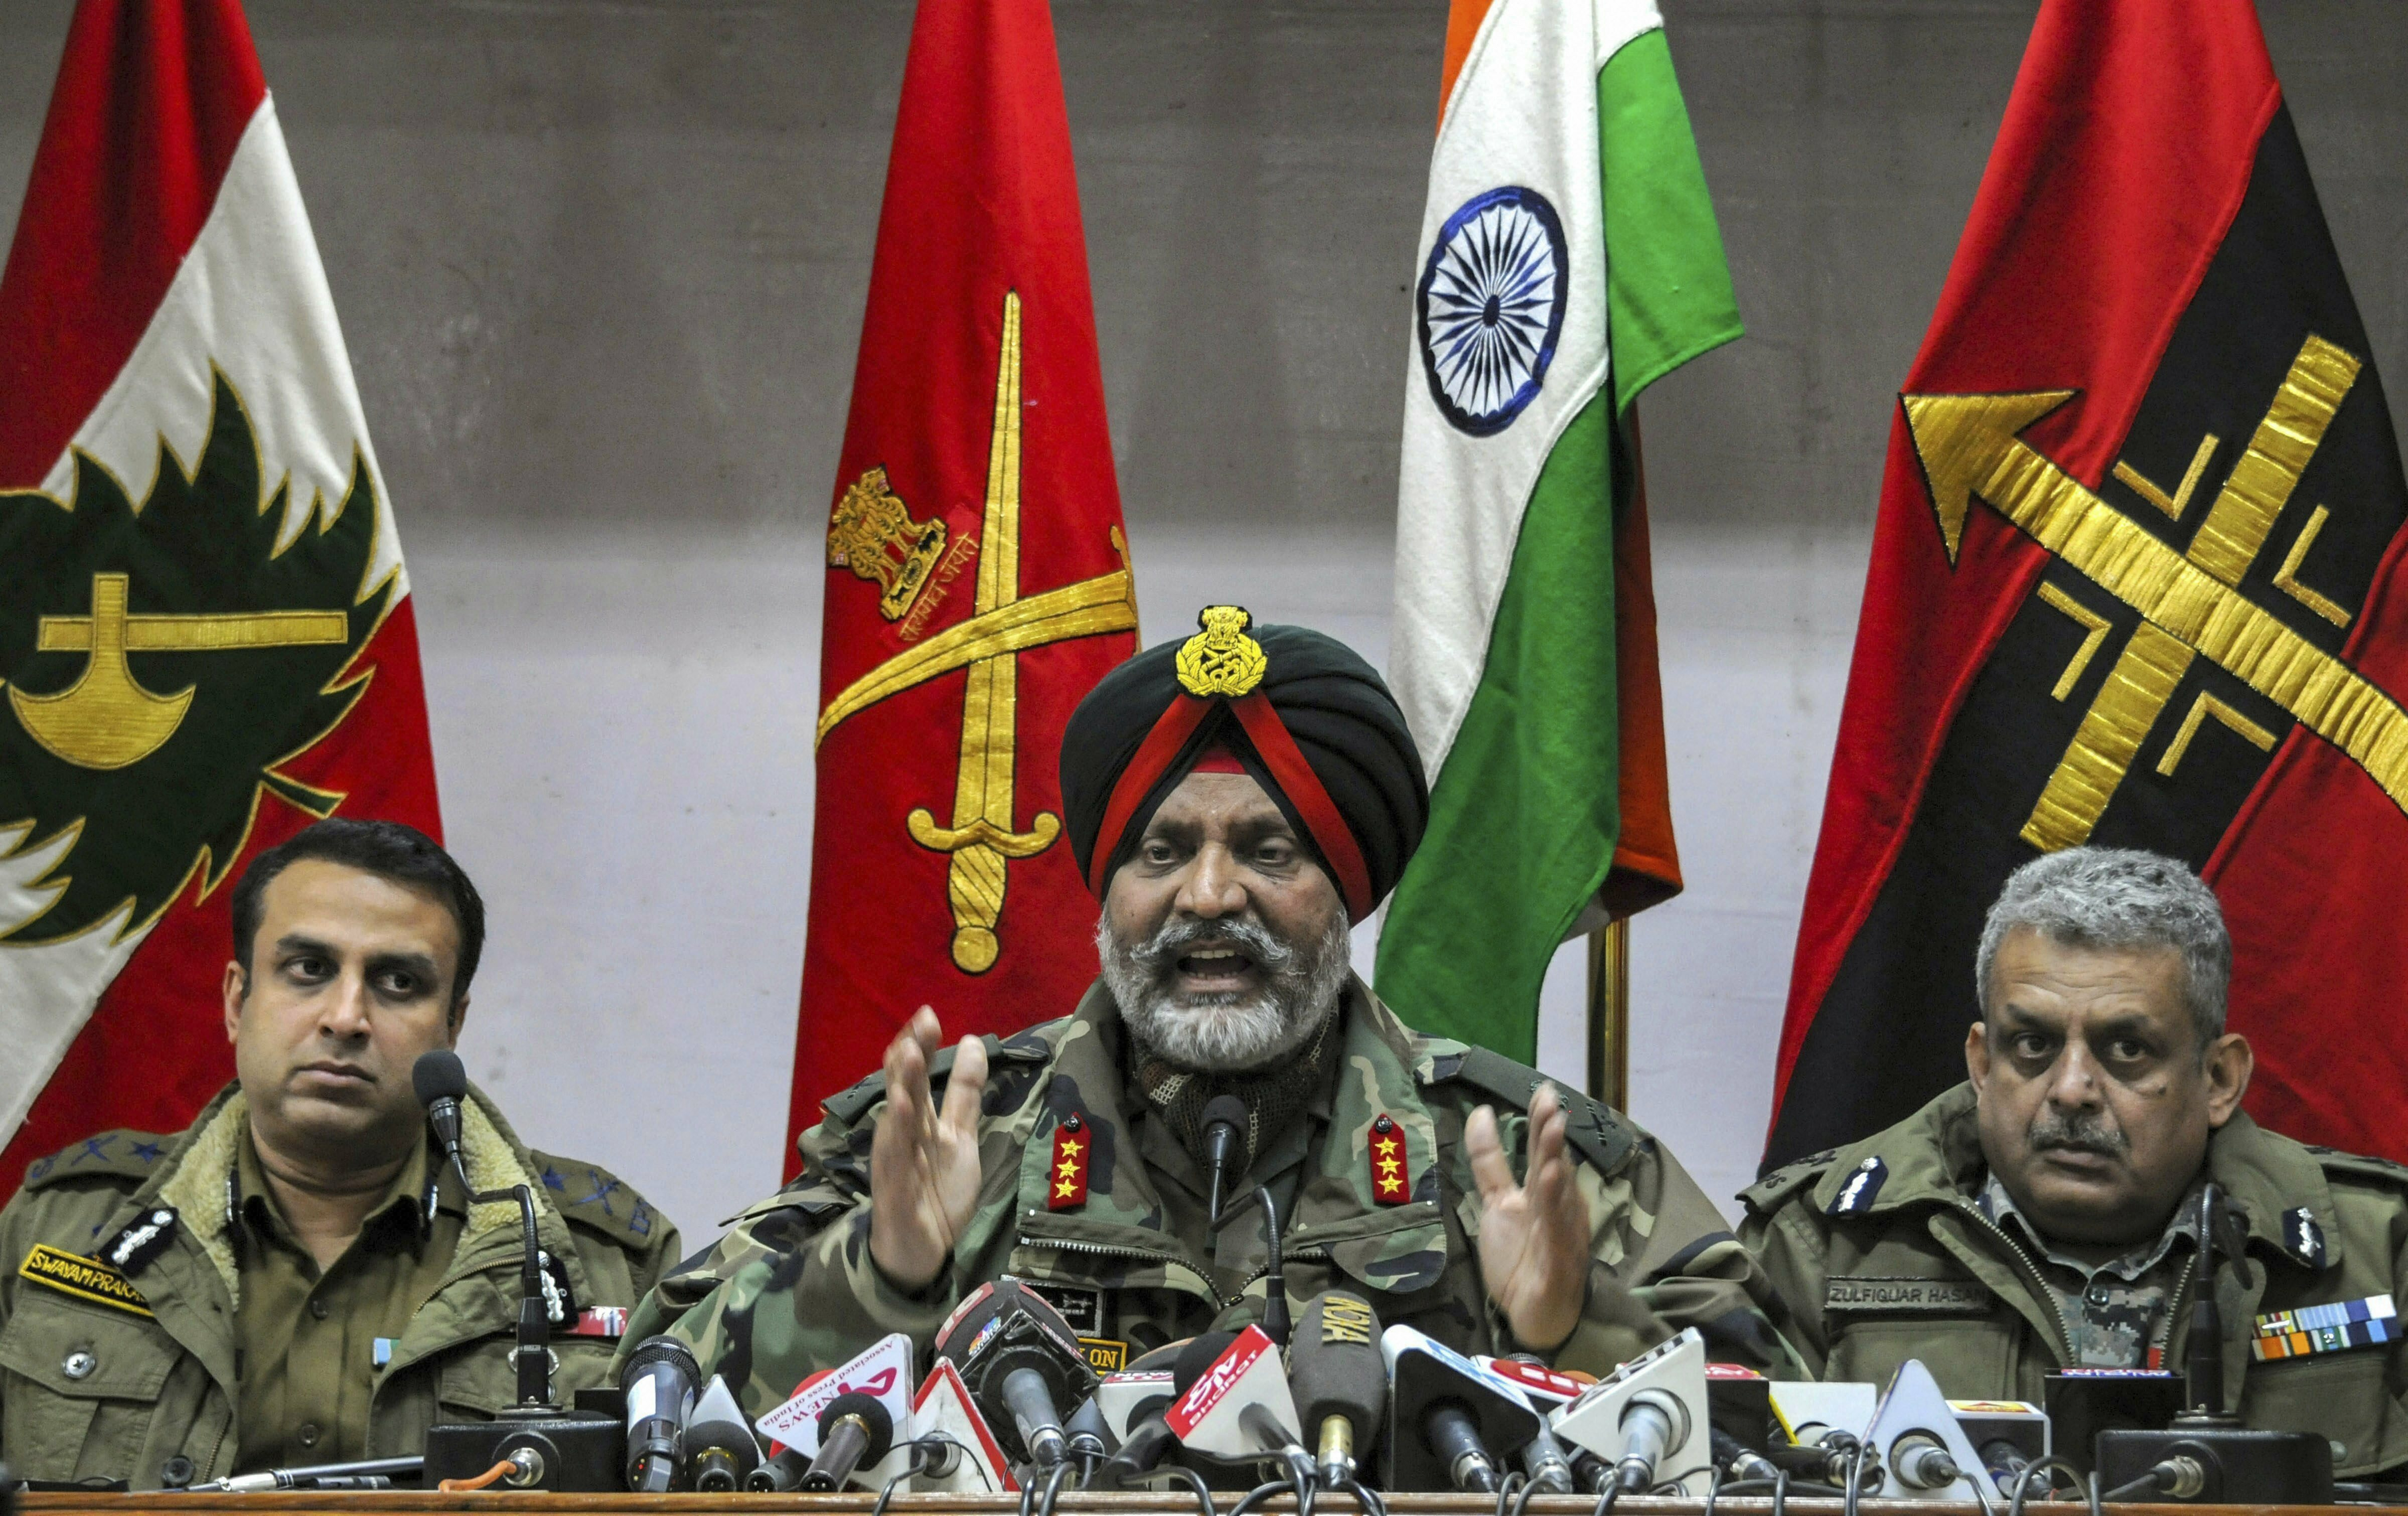 Indian Army's Lt General KJS Dhillon, Inspector General of Police Kashmir S P Pani (L) and CRPF Inspector General Kashmir Zulfiqar Hassan (R) address a joint press conference at Army's 15 Corps headquarters, Badami Bagh in Srinagar - PTI